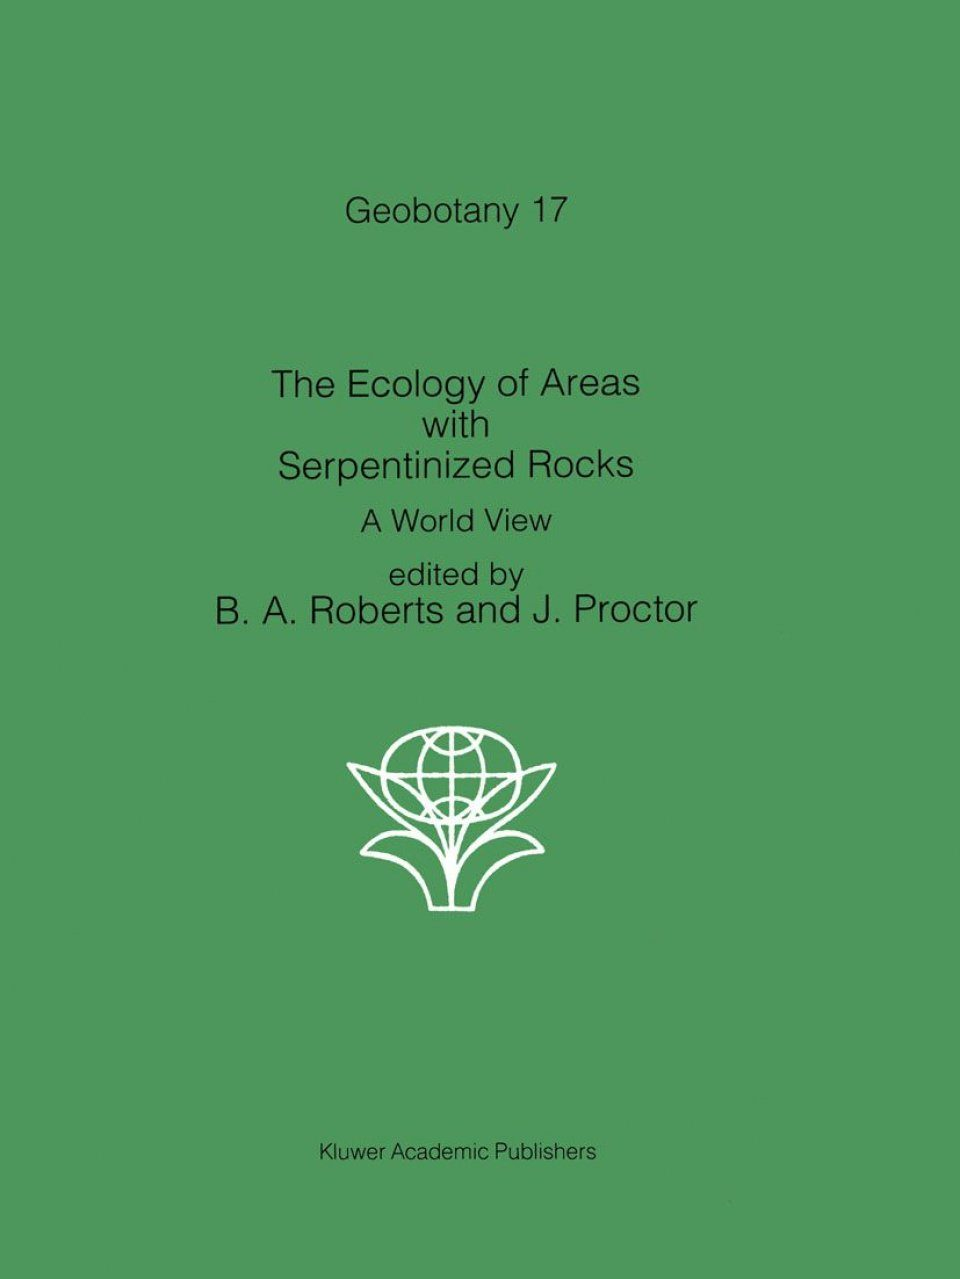 The Ecology of Areas with Serpentinized Rocks